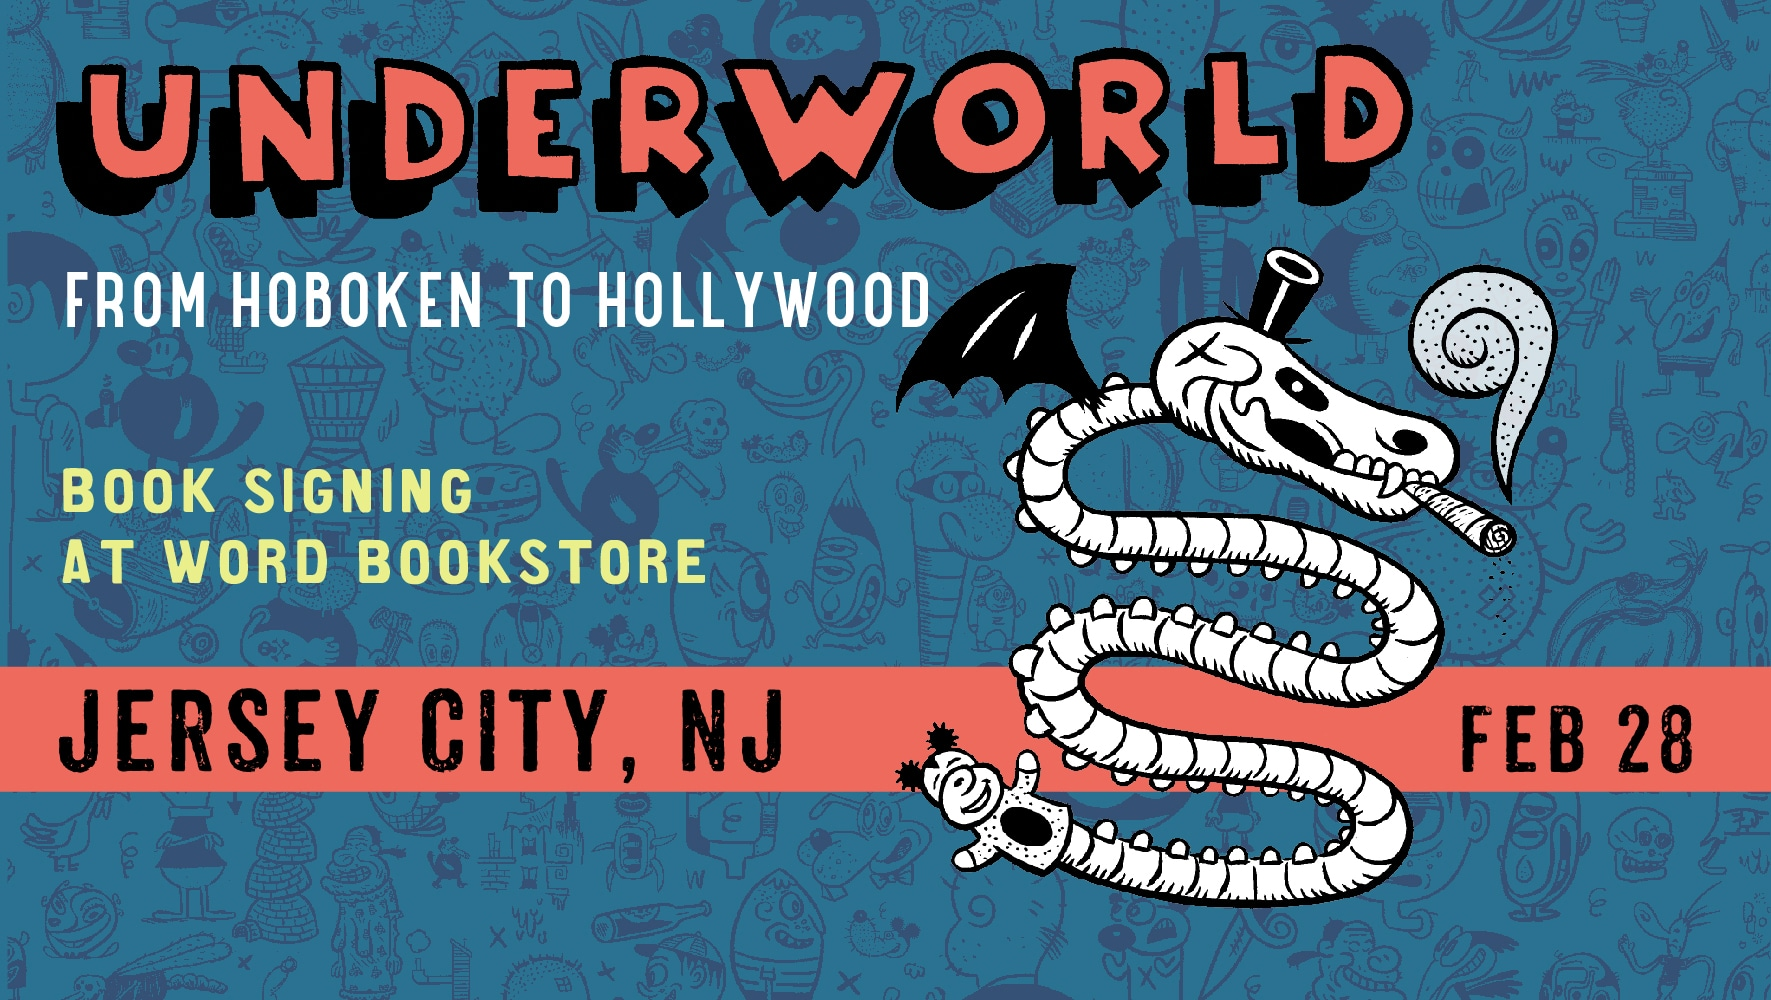 Underworld Book signing at Word Bookstore Jersey City Feb 28